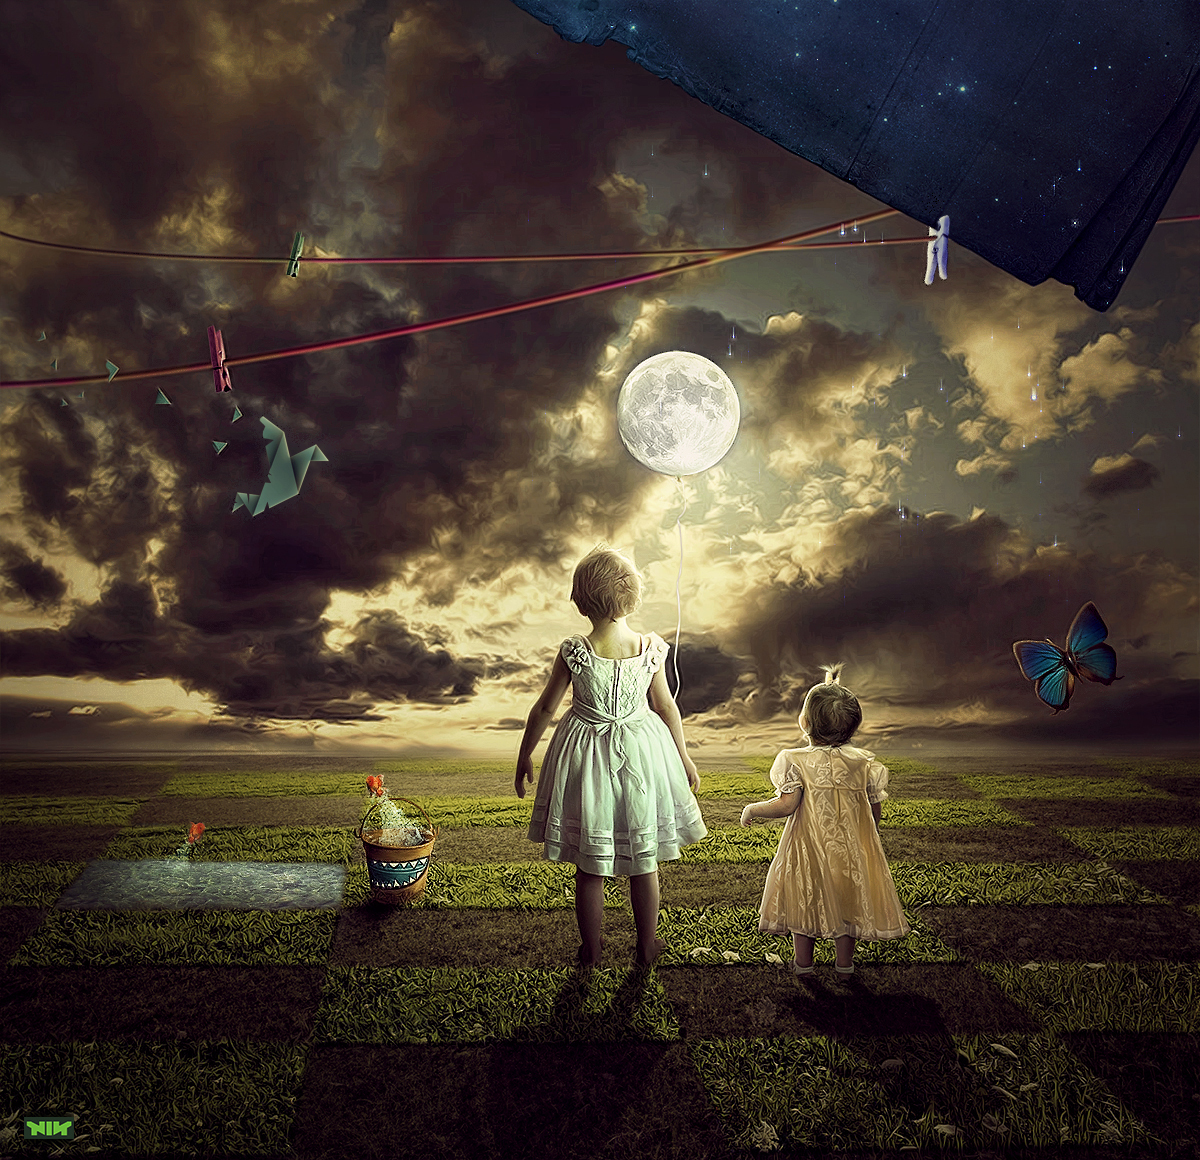 Wallpapers Digital Art Photocomposition she take the moon